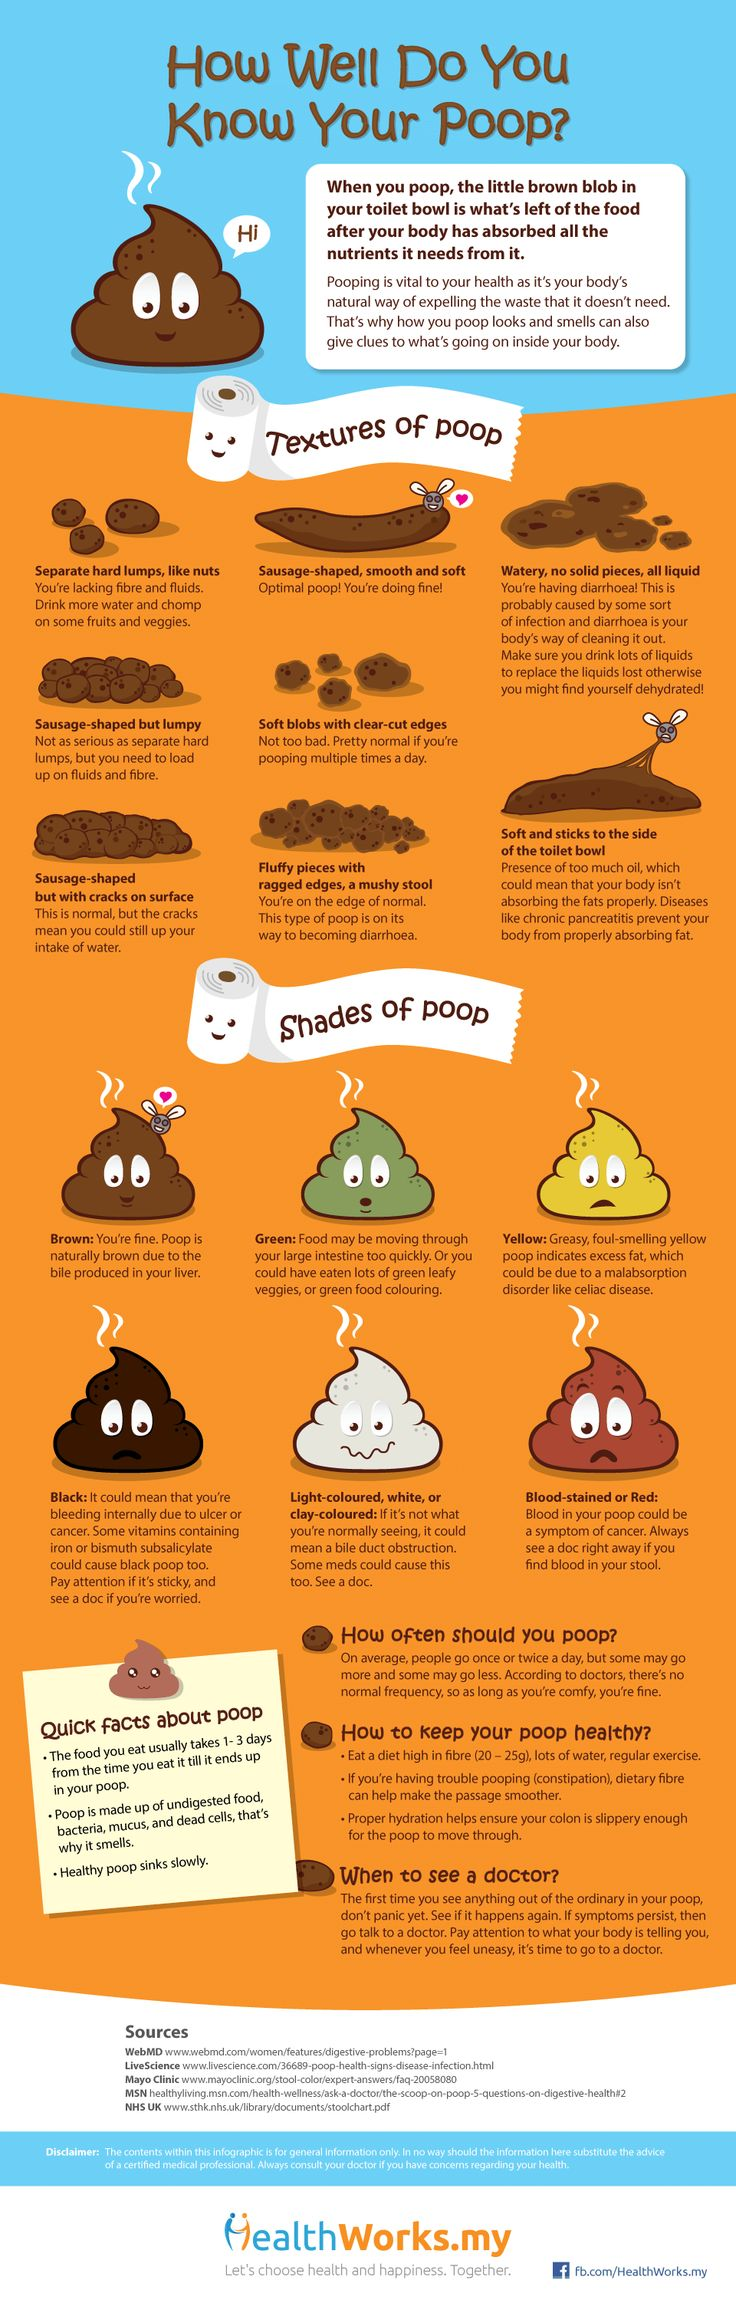 Poop-Infographic-Family-Friendly-Version. Because we all poop and should know when our intestines are fine